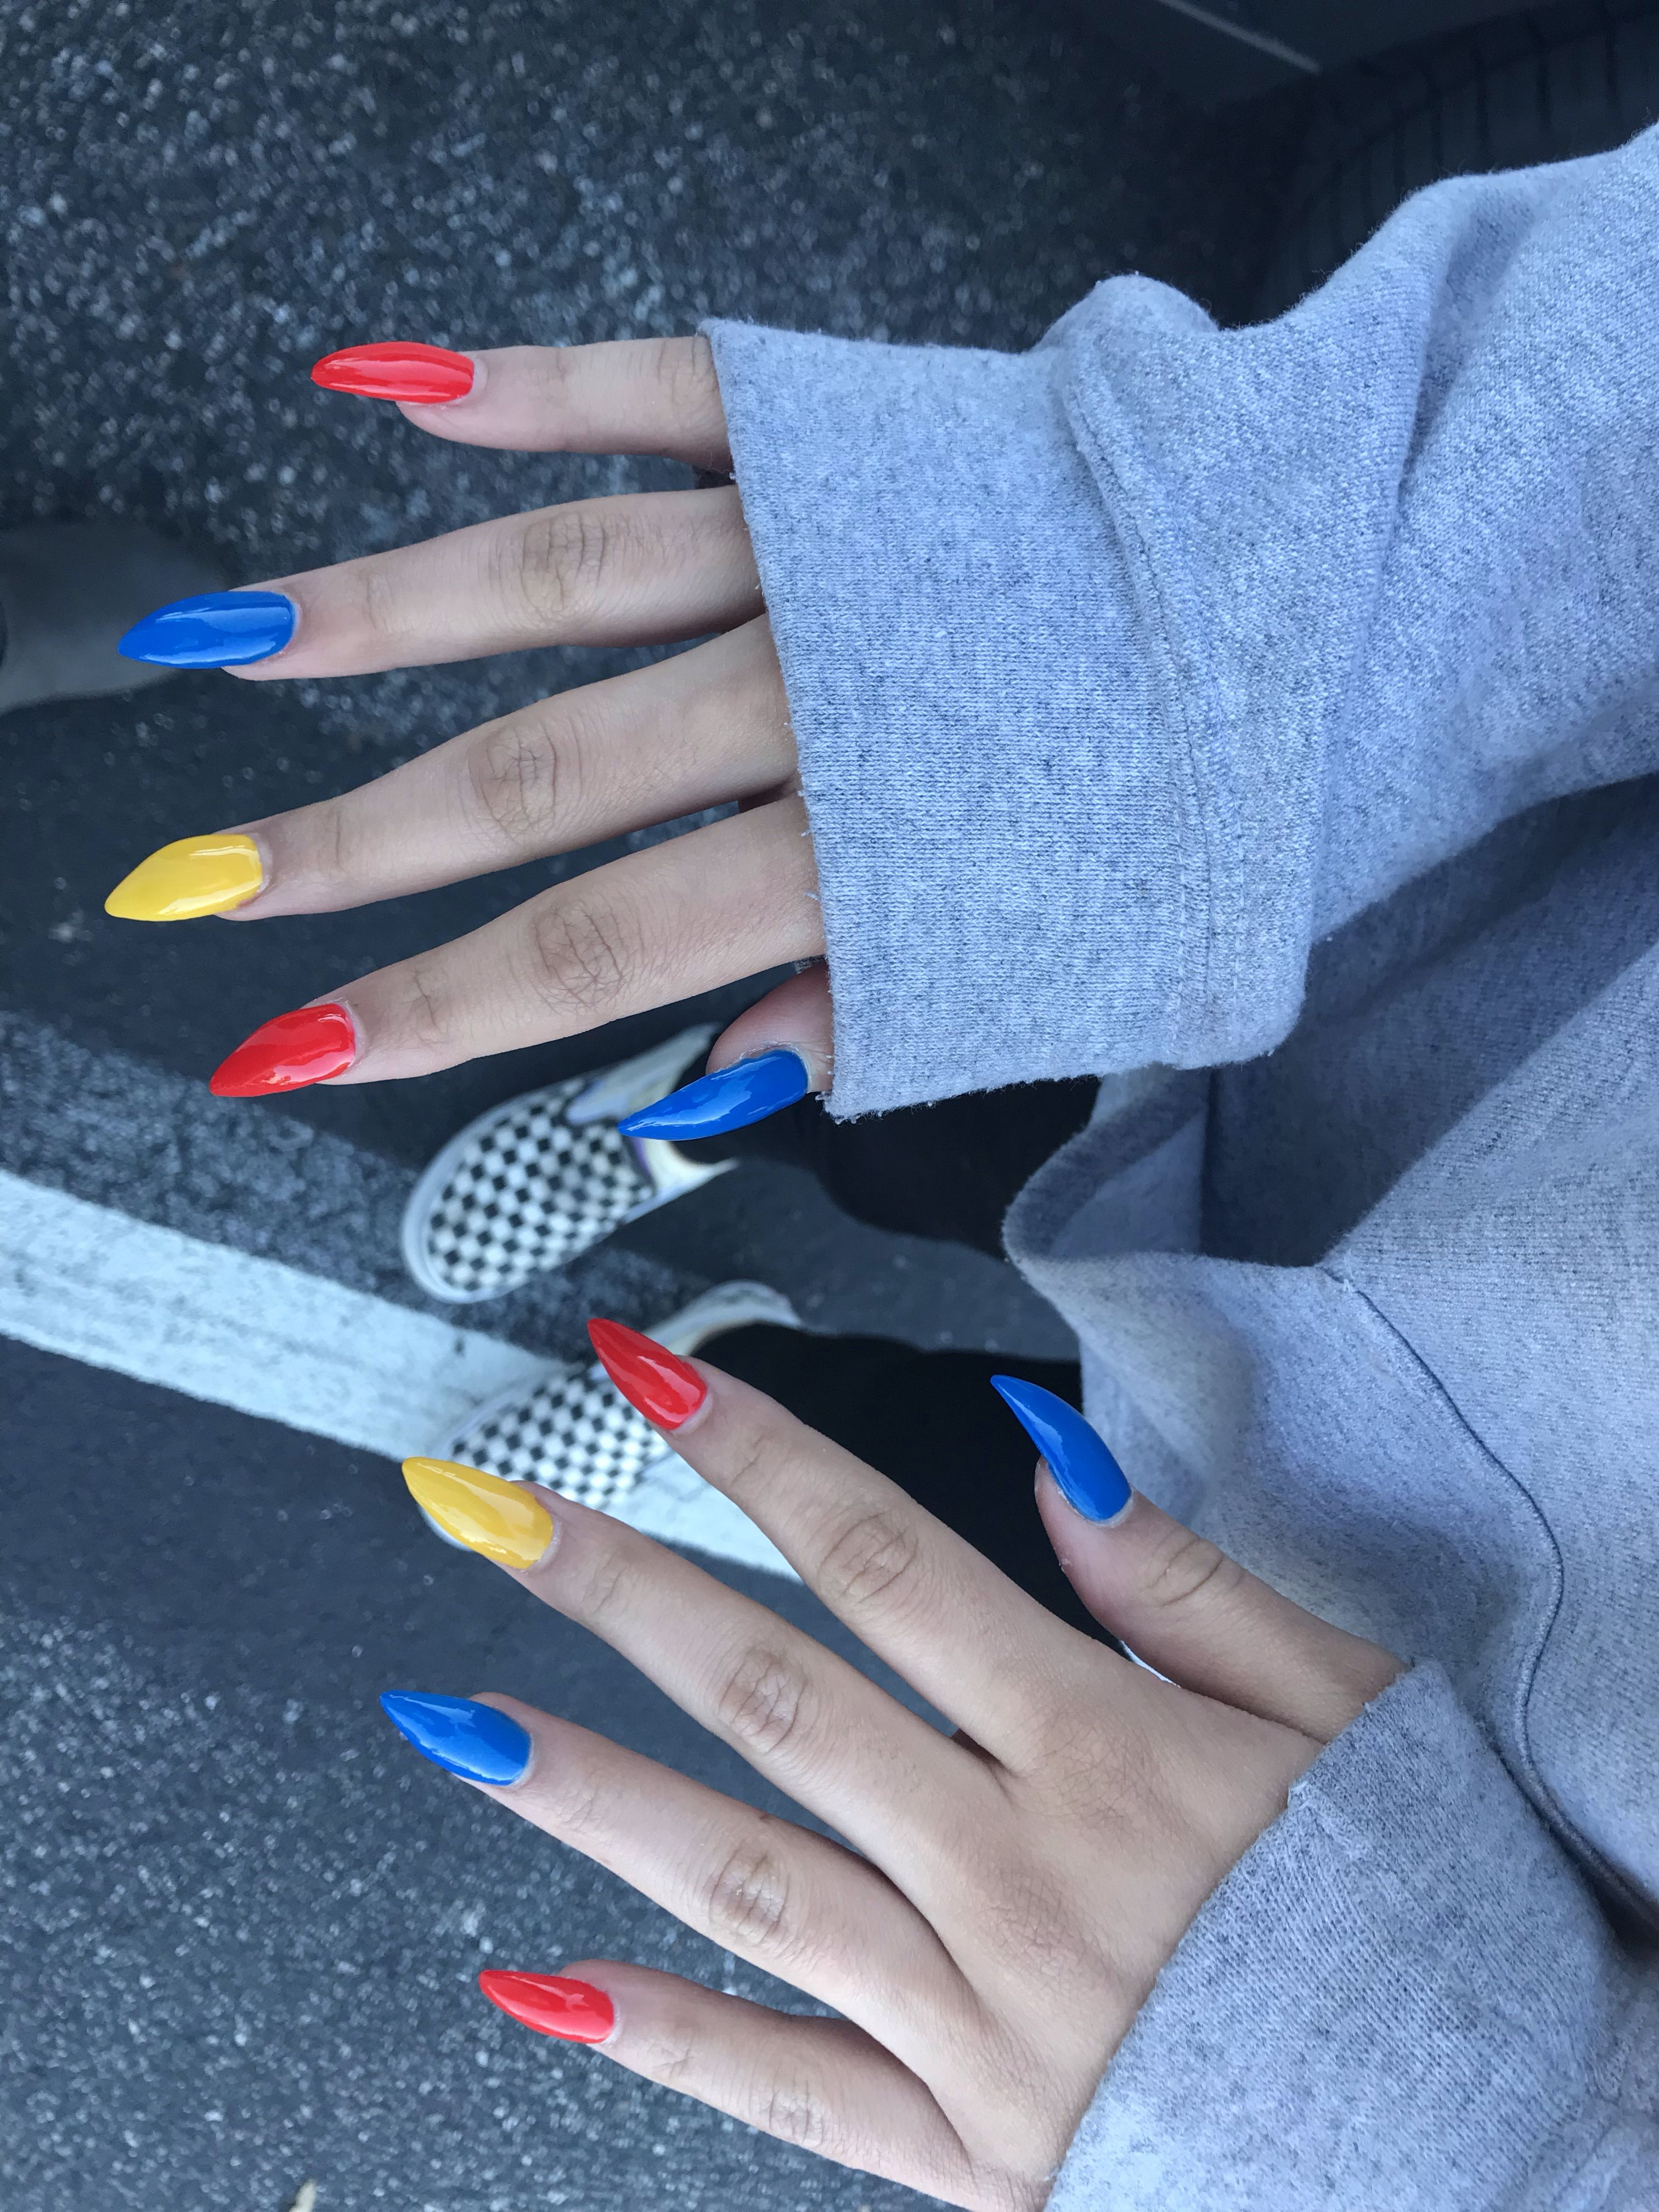 Primary Color Nails Acrylic Nails Stiletto Yellow Nails Design Yellow Nail Art